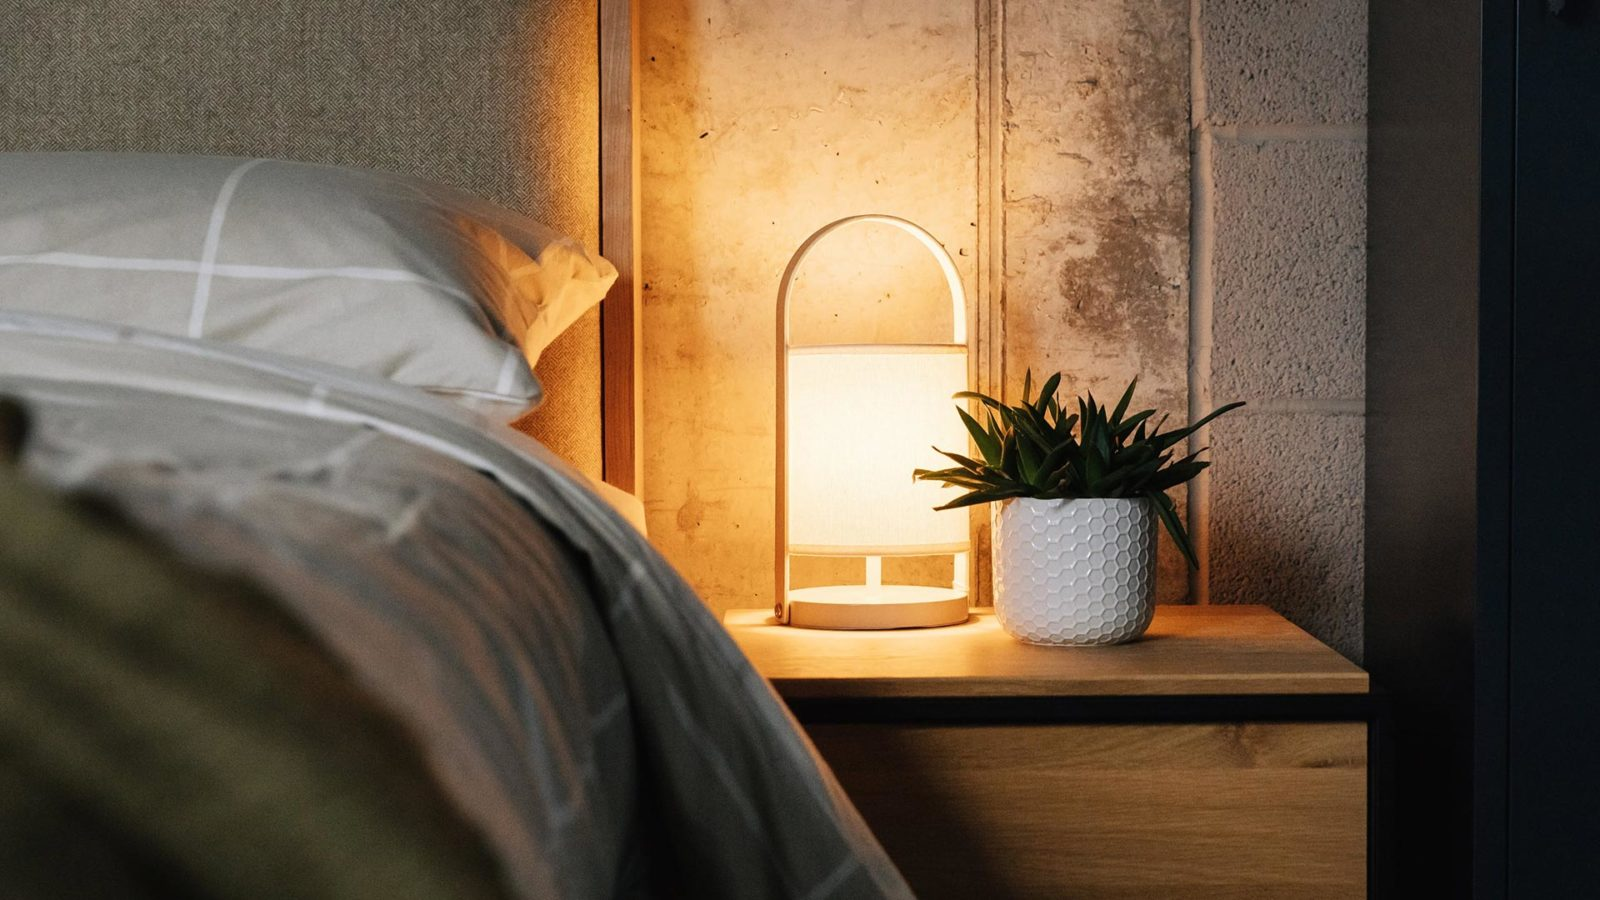 St Ives bedside lamp from Natural Bed Company